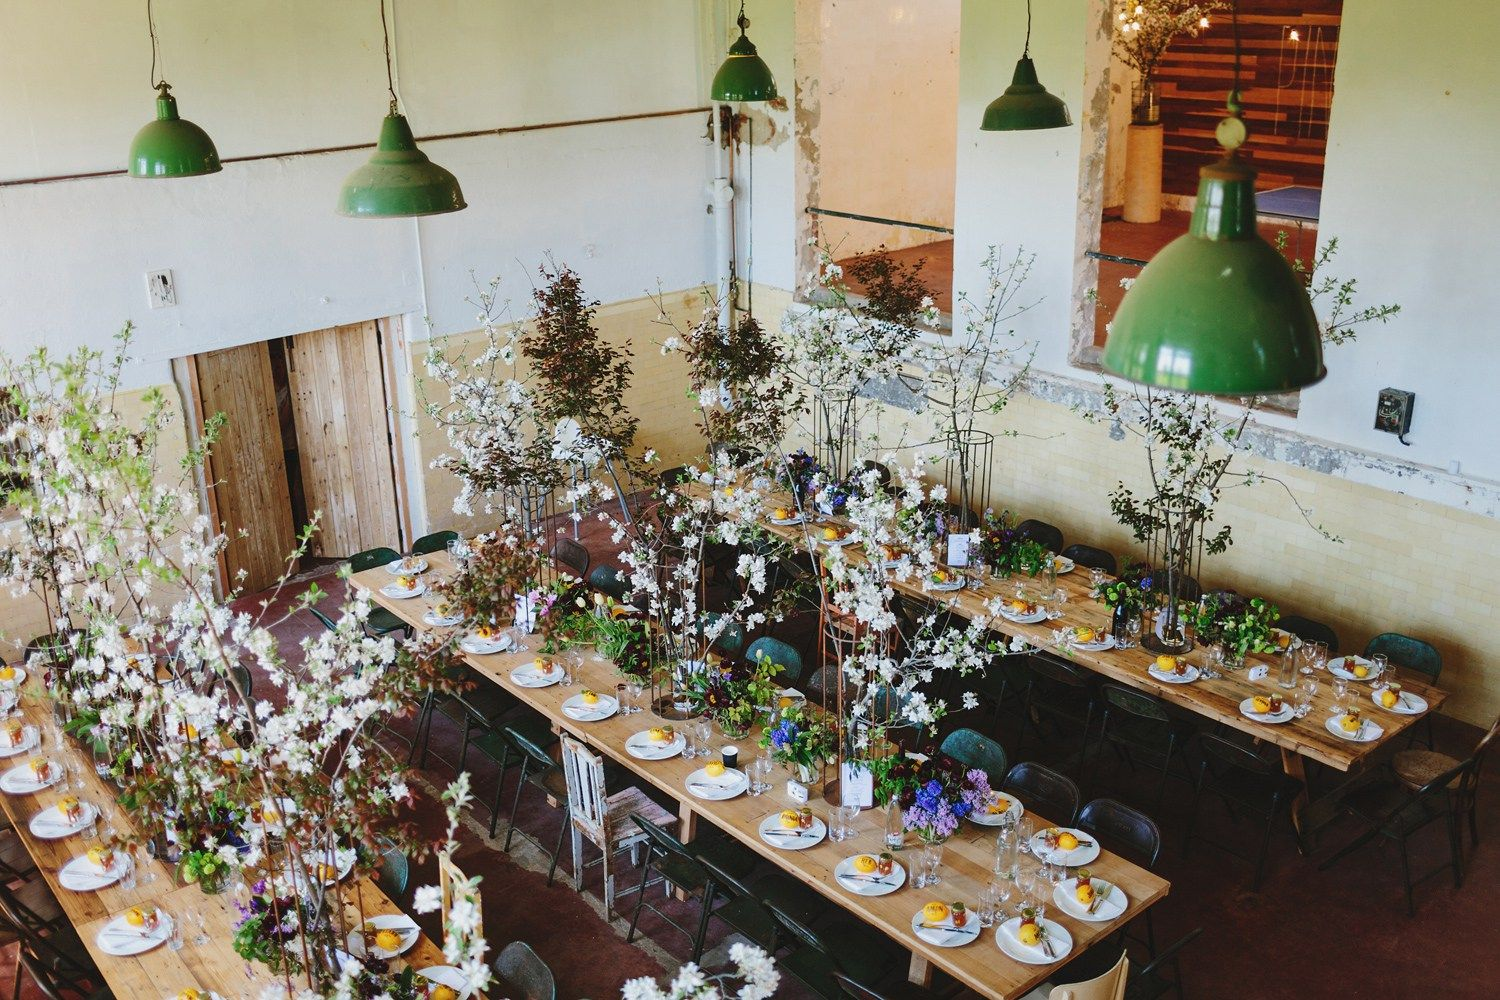 Rustic Wedding reception at old factory | fabmood.com #wedding #rusticwedding #factorywedding